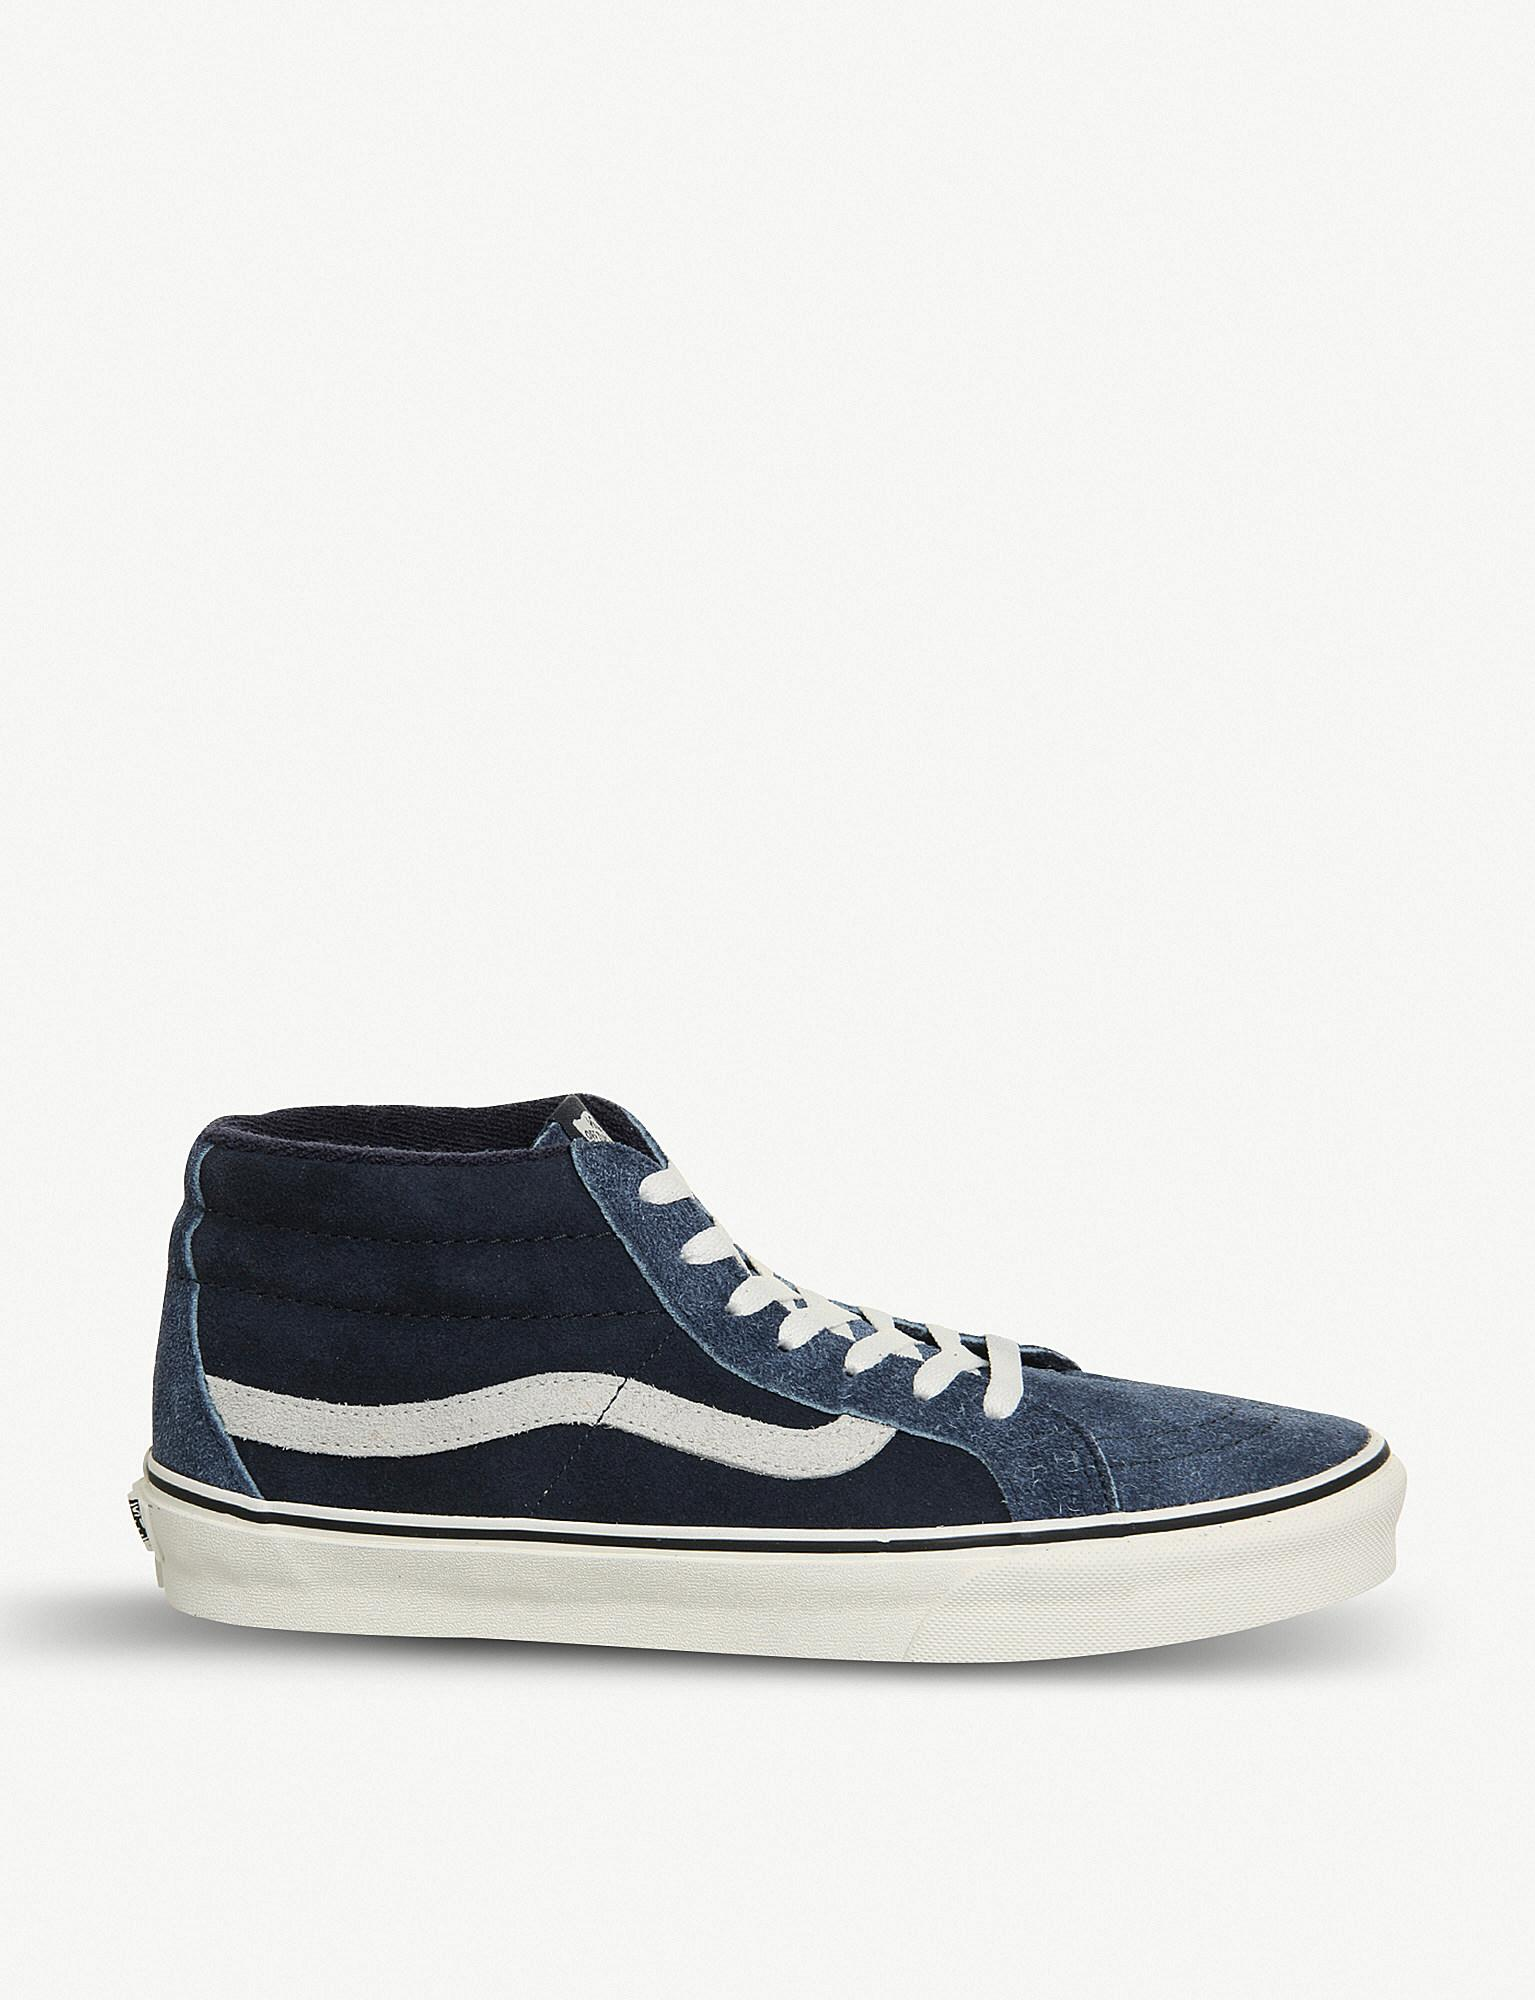 2f168cc1ad9731 Vans Sk8 Mid-top Suede Trainers in Blue for Men - Save 38% - Lyst